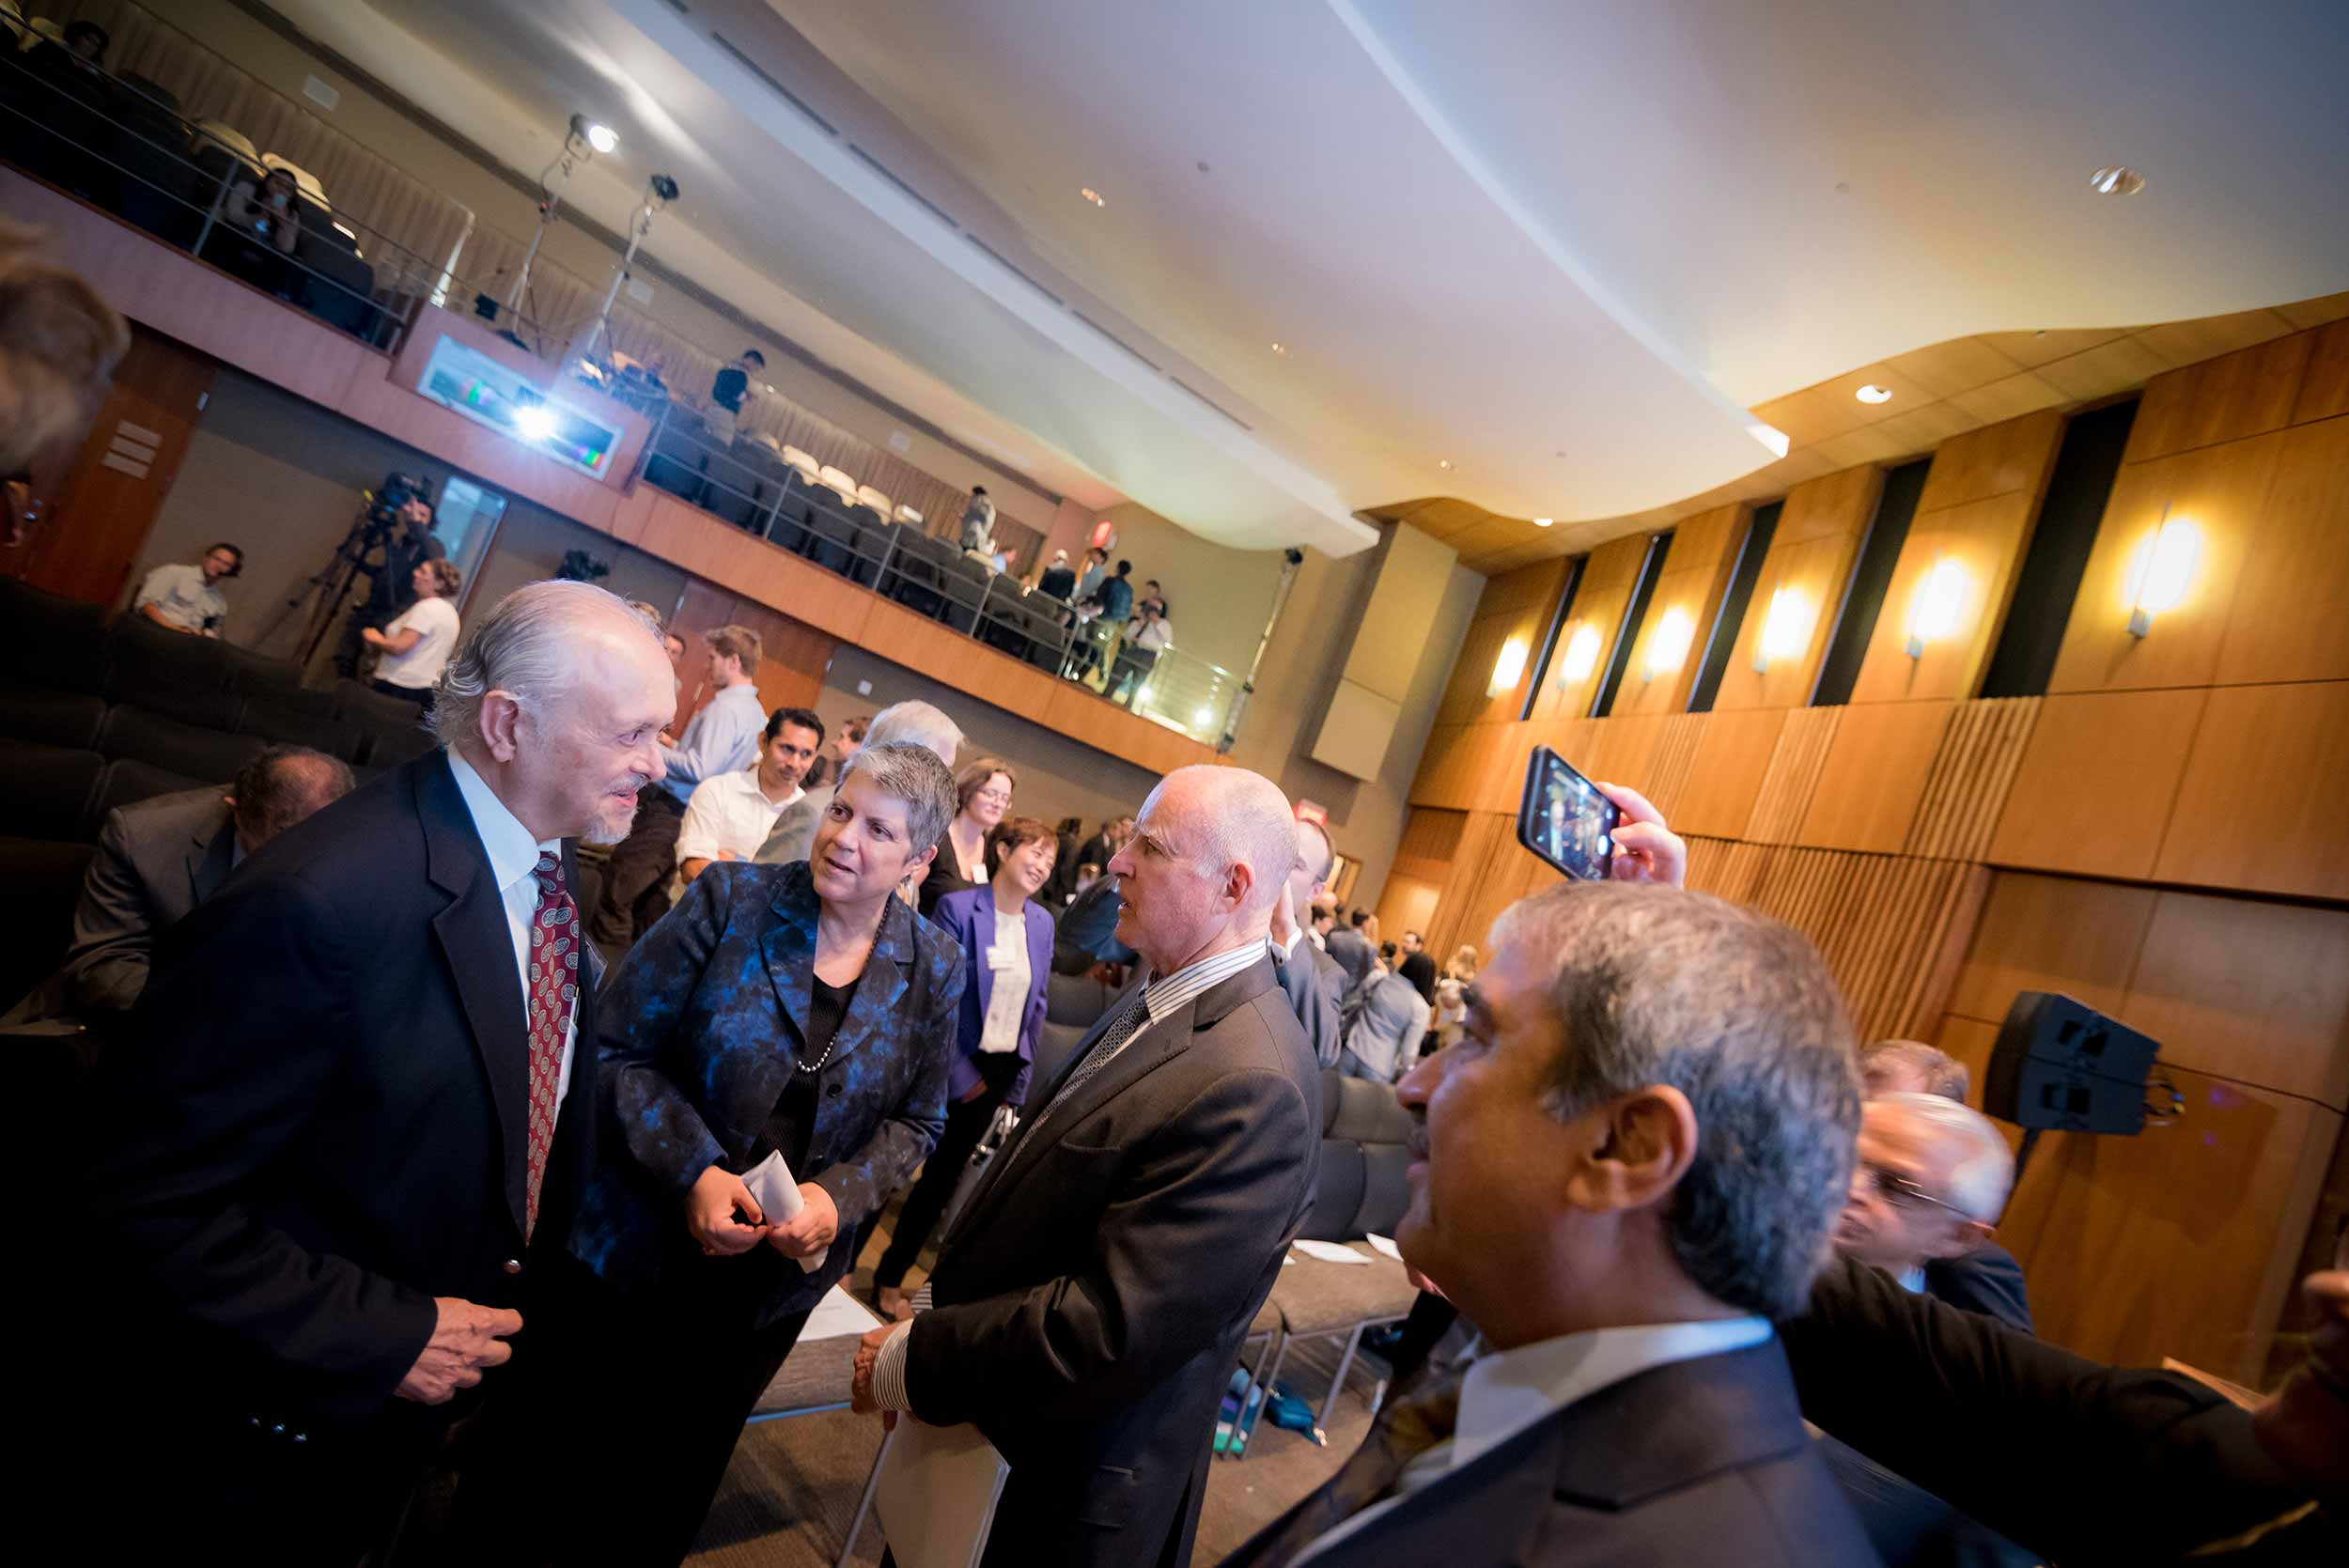 Photo: The UC Carbon and Climate Neutrality Summit